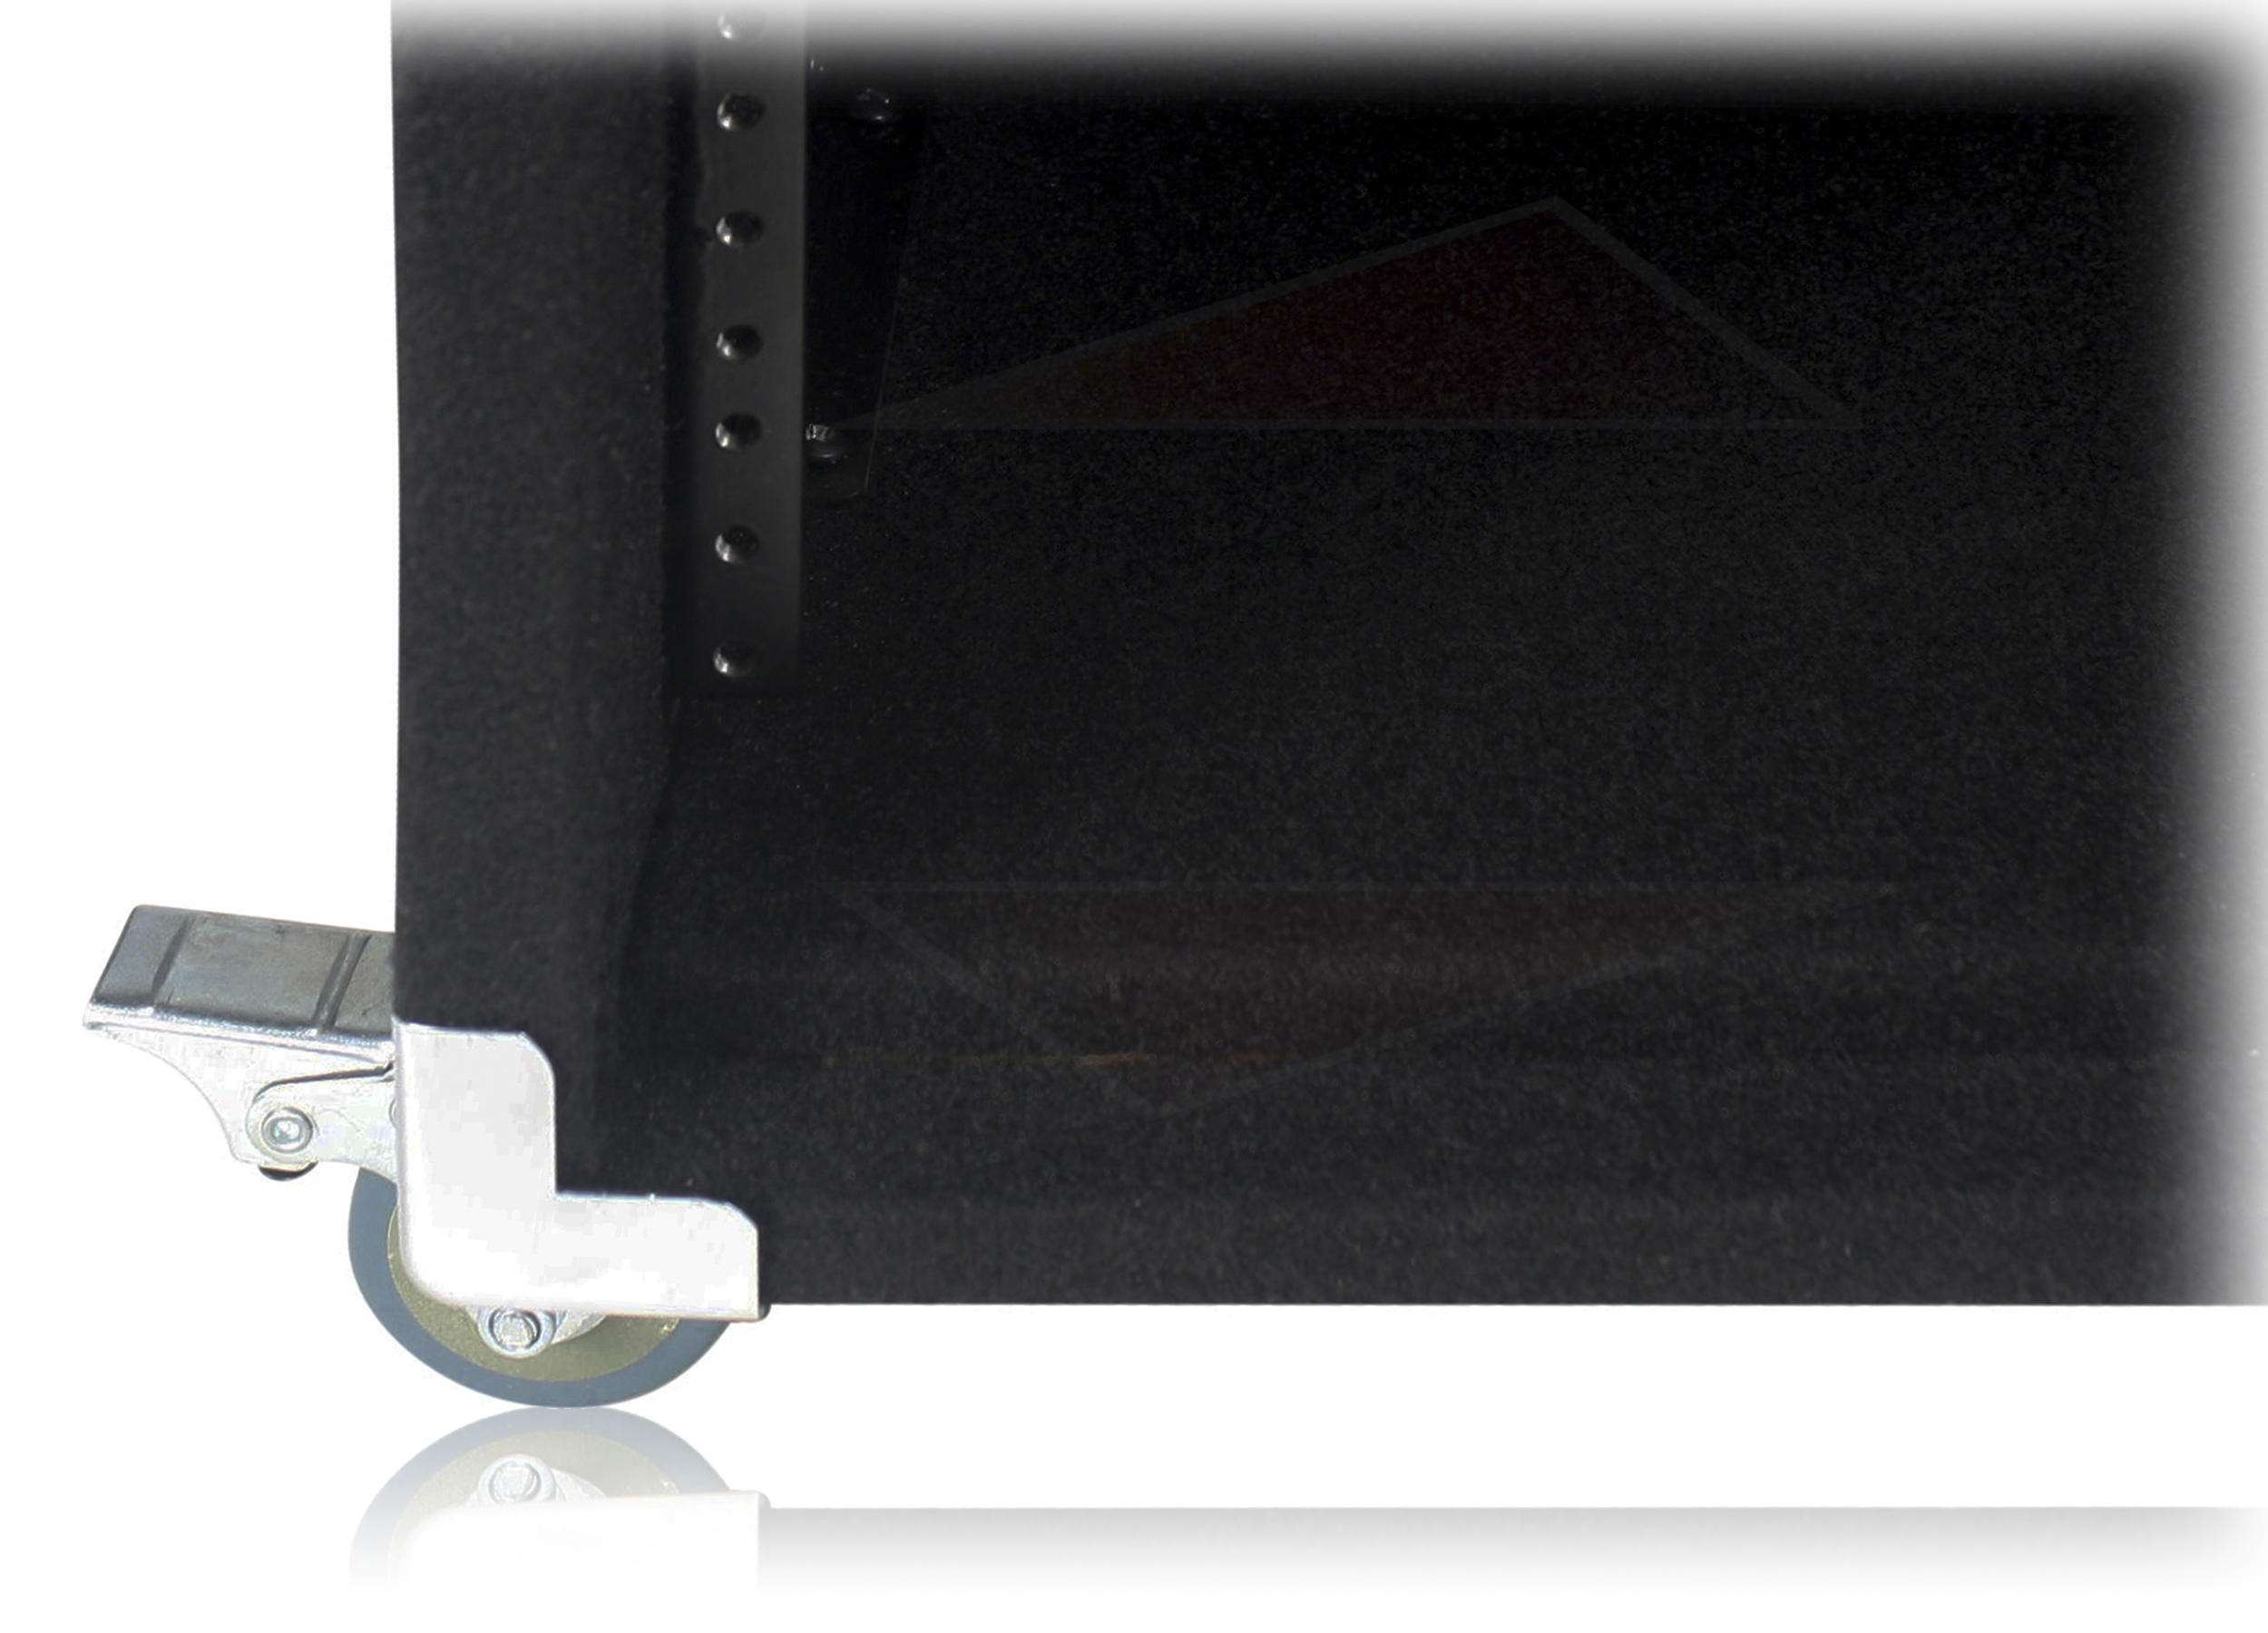 u rack mount studio mixer cabinet road case stand dj includes a set of rack mounting bolts